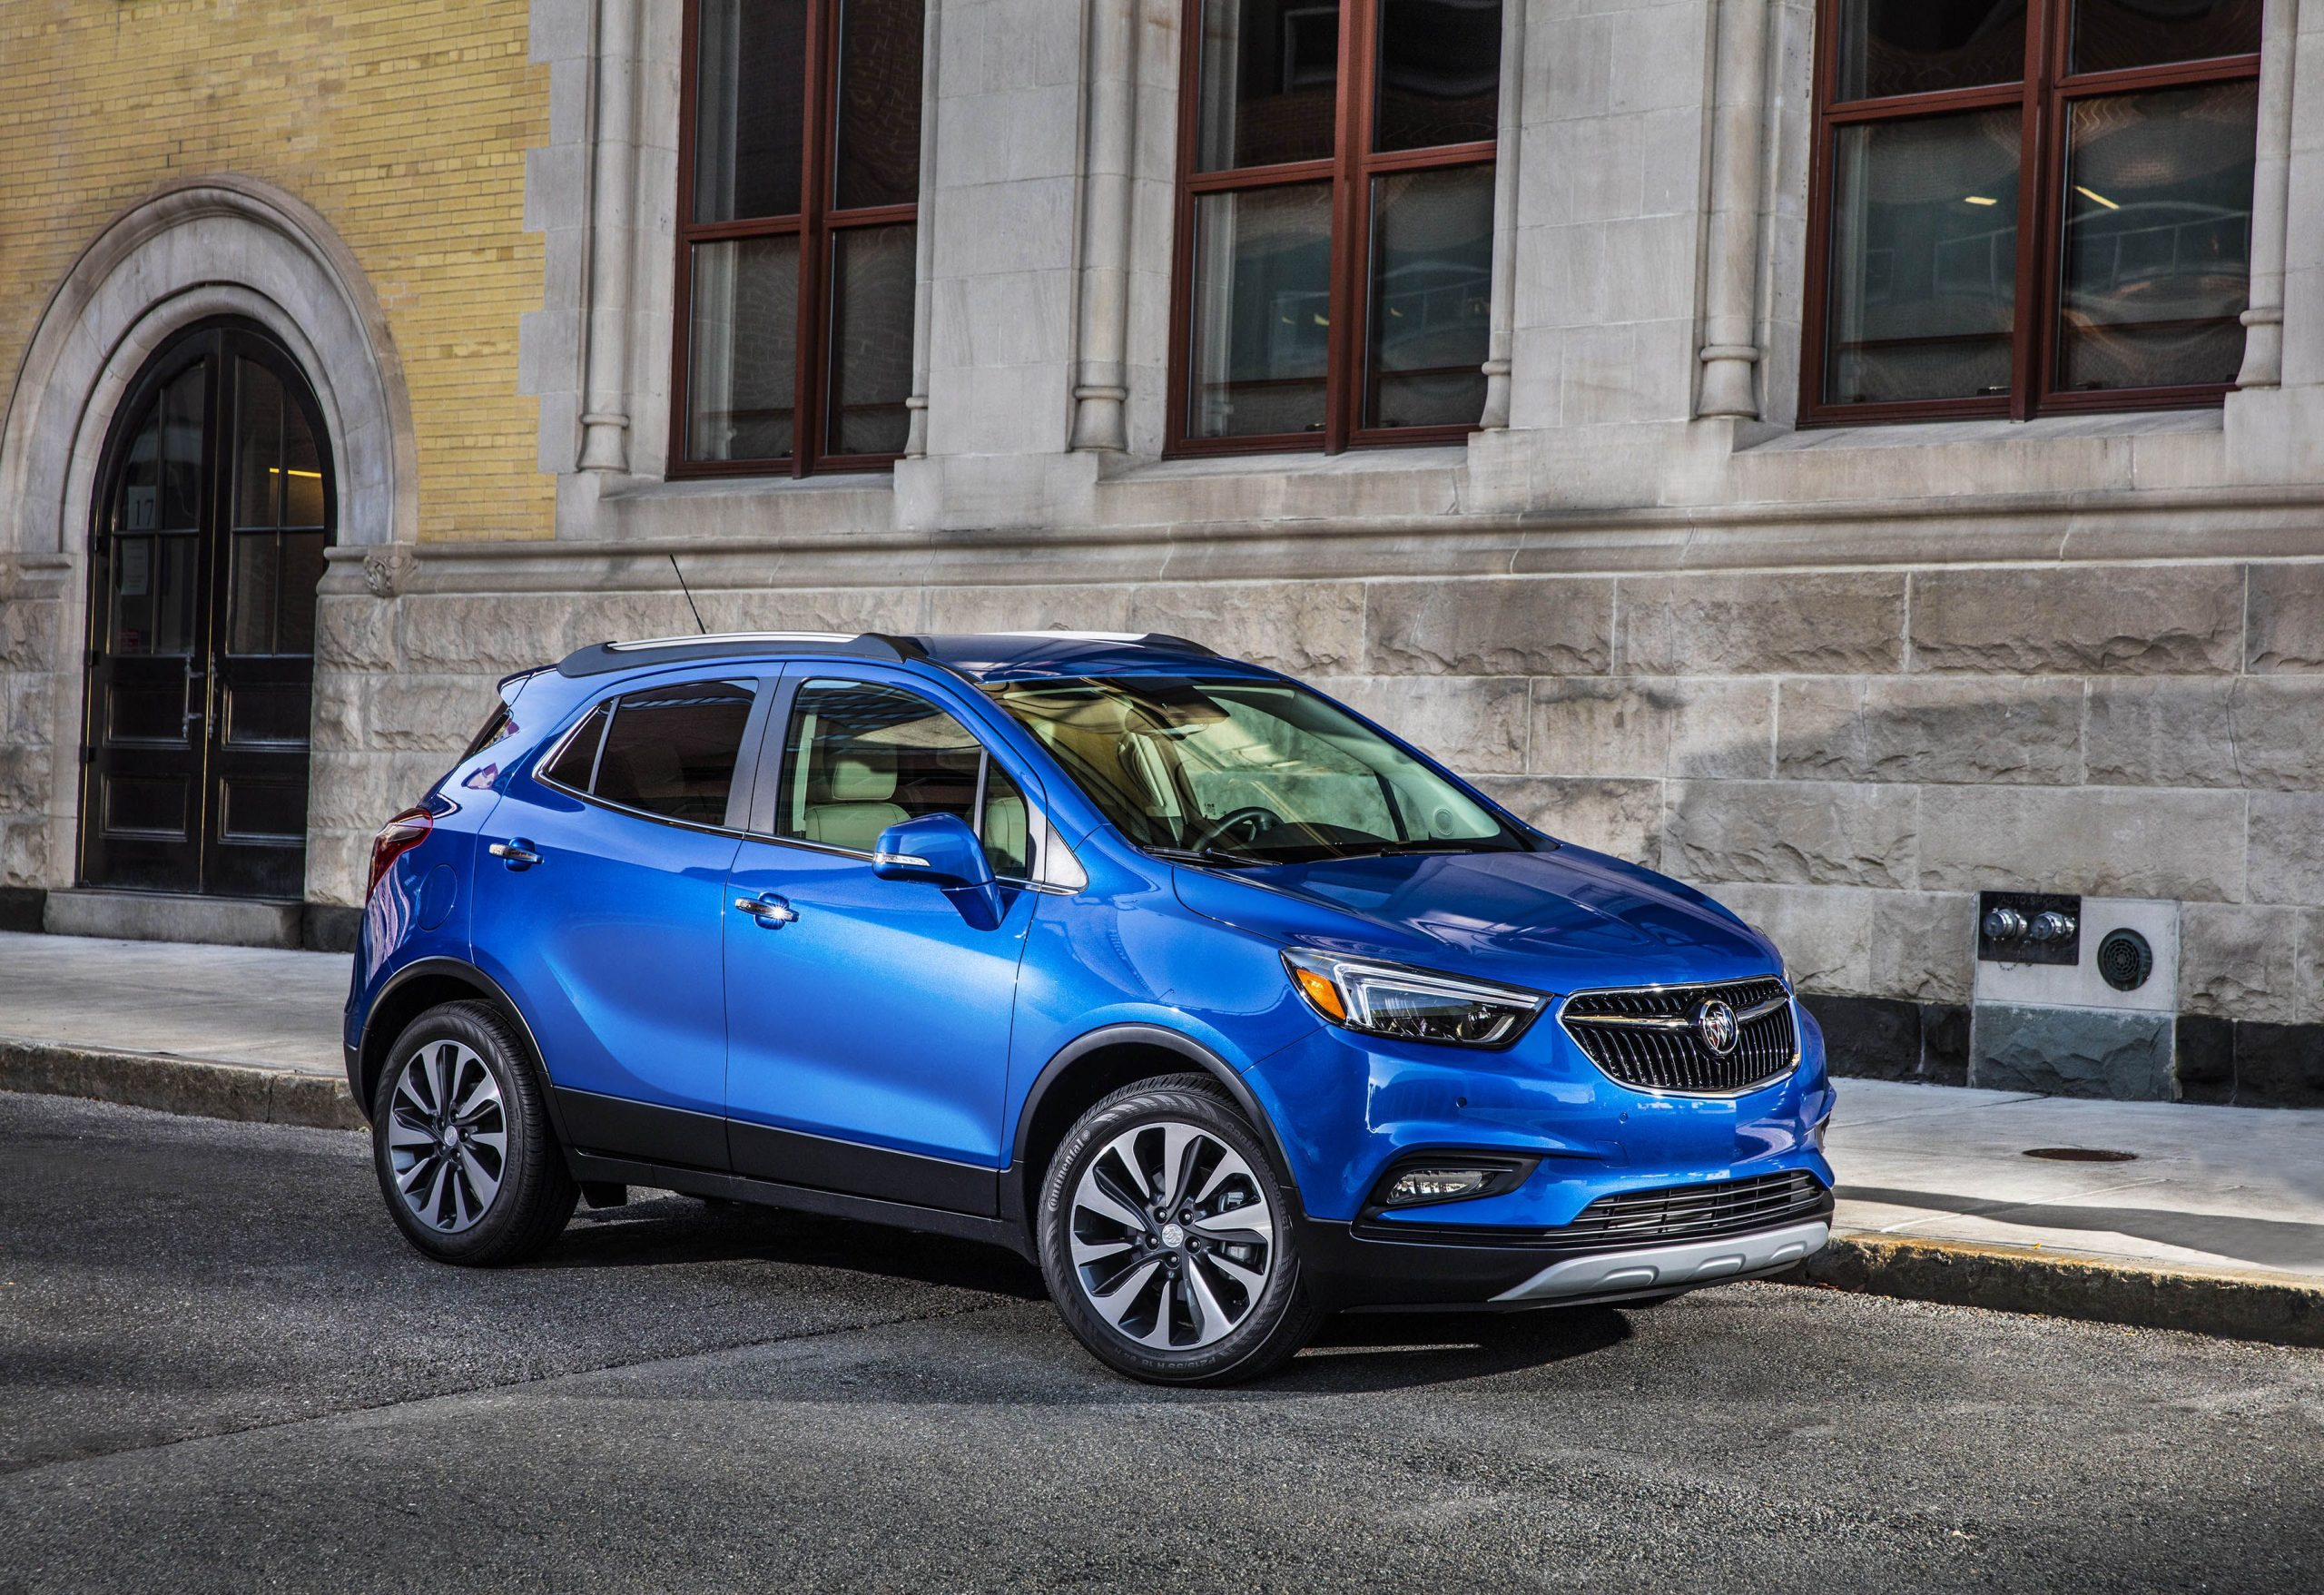 2020 Buick Encore Review, Pricing, And Specs 2022 Buick Encore Msrp, Models, Manual